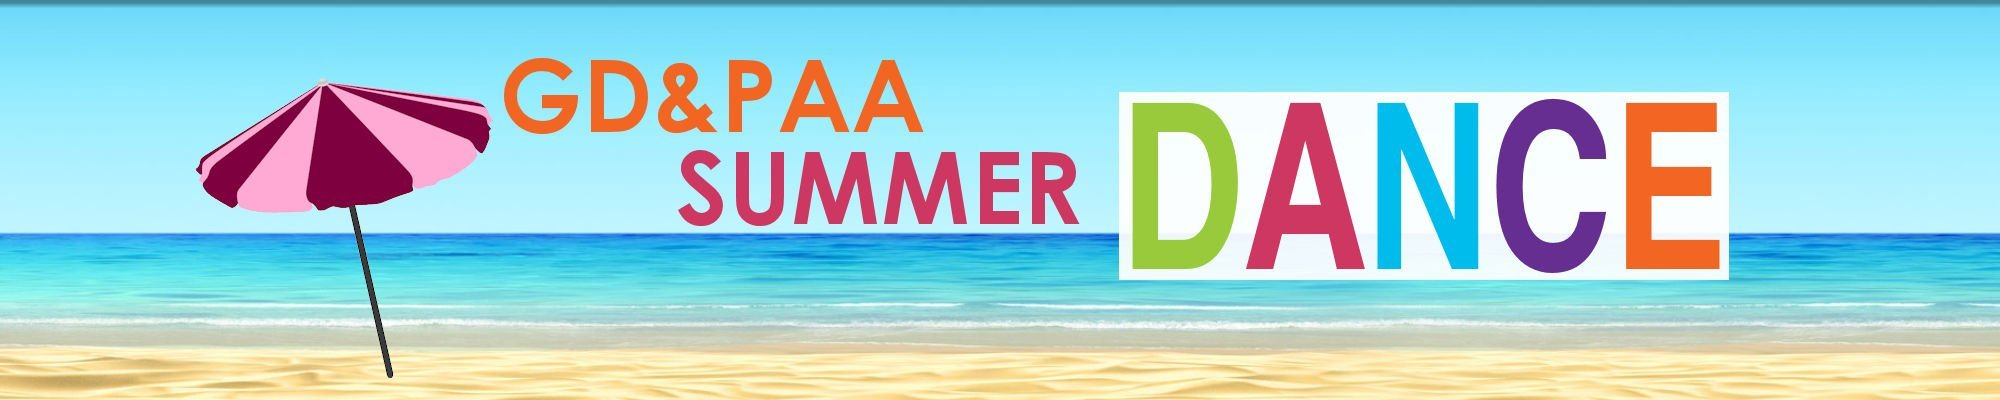 SUMMER_DANCE_PAGE_BANNER